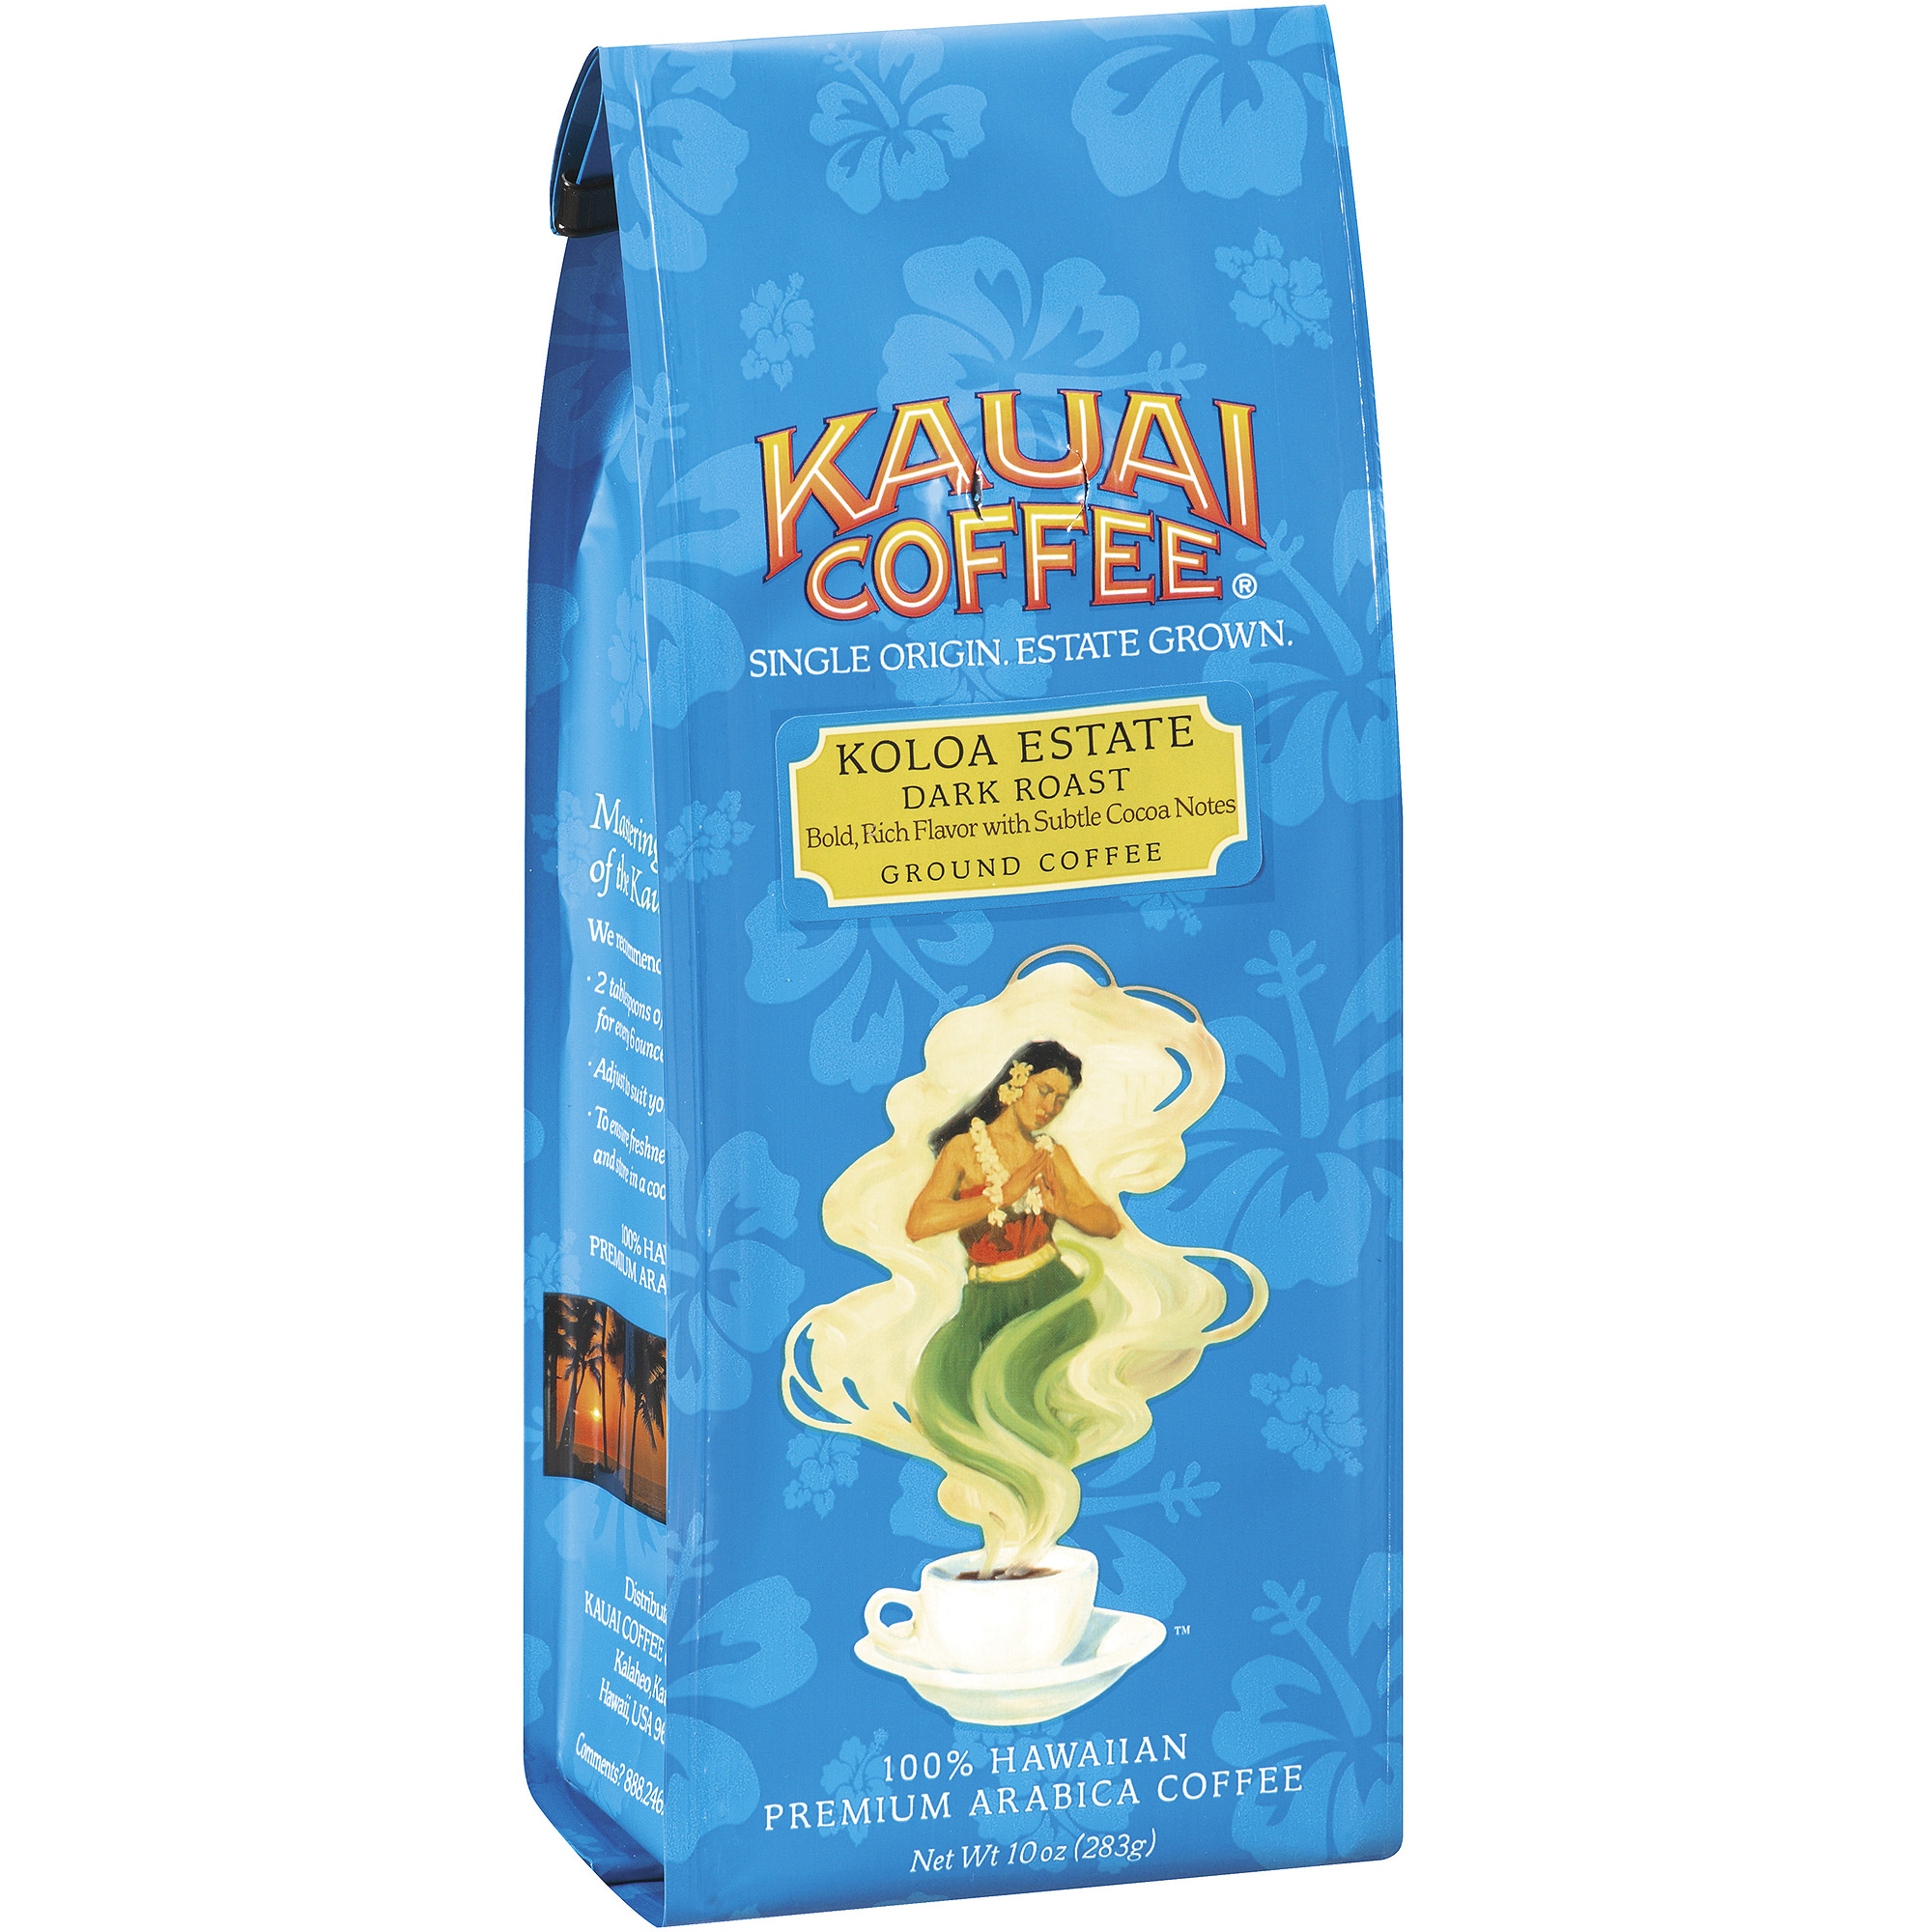 Kauai Coffee Koloa Estate Dark Roast Ground Coffee, 10 oz